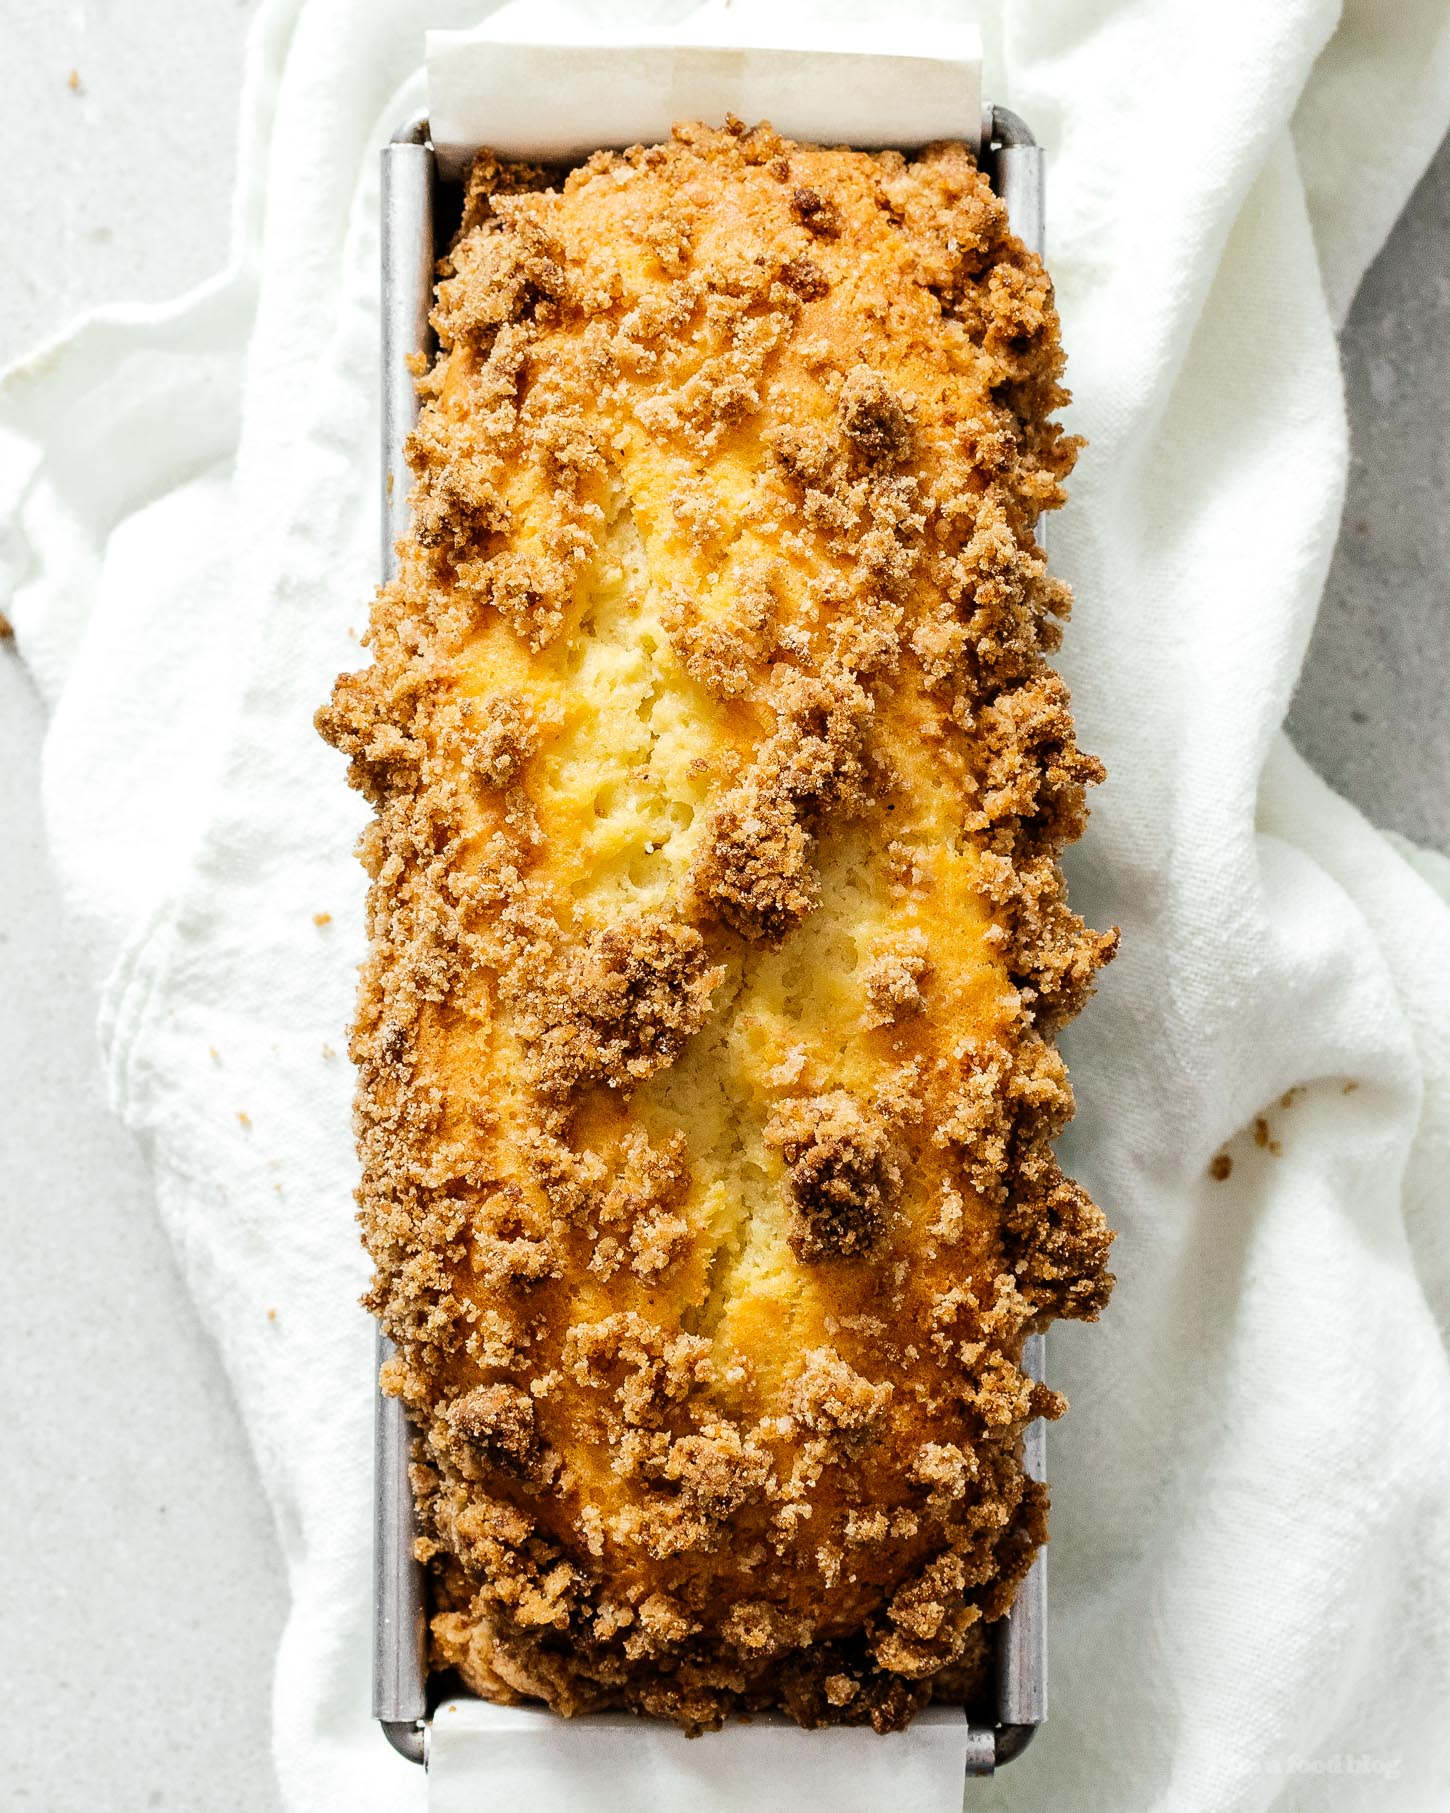 Small Batch Copycat Cinnamon Streusel Starbucks Coffee Cake Recipe | www.iamafoodblog.com